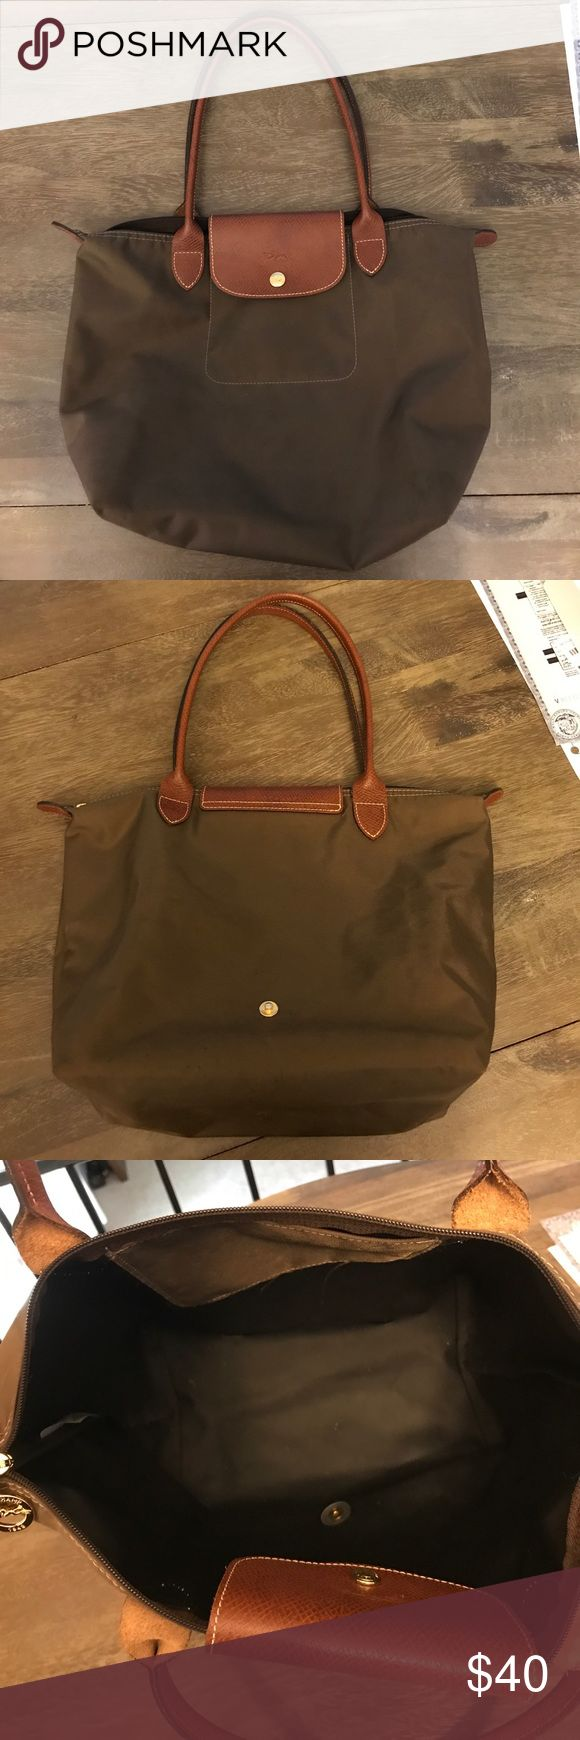 Longchamp medium tote handbag Olive color, no tears/rips, in great condition Longchamp Bags Totes